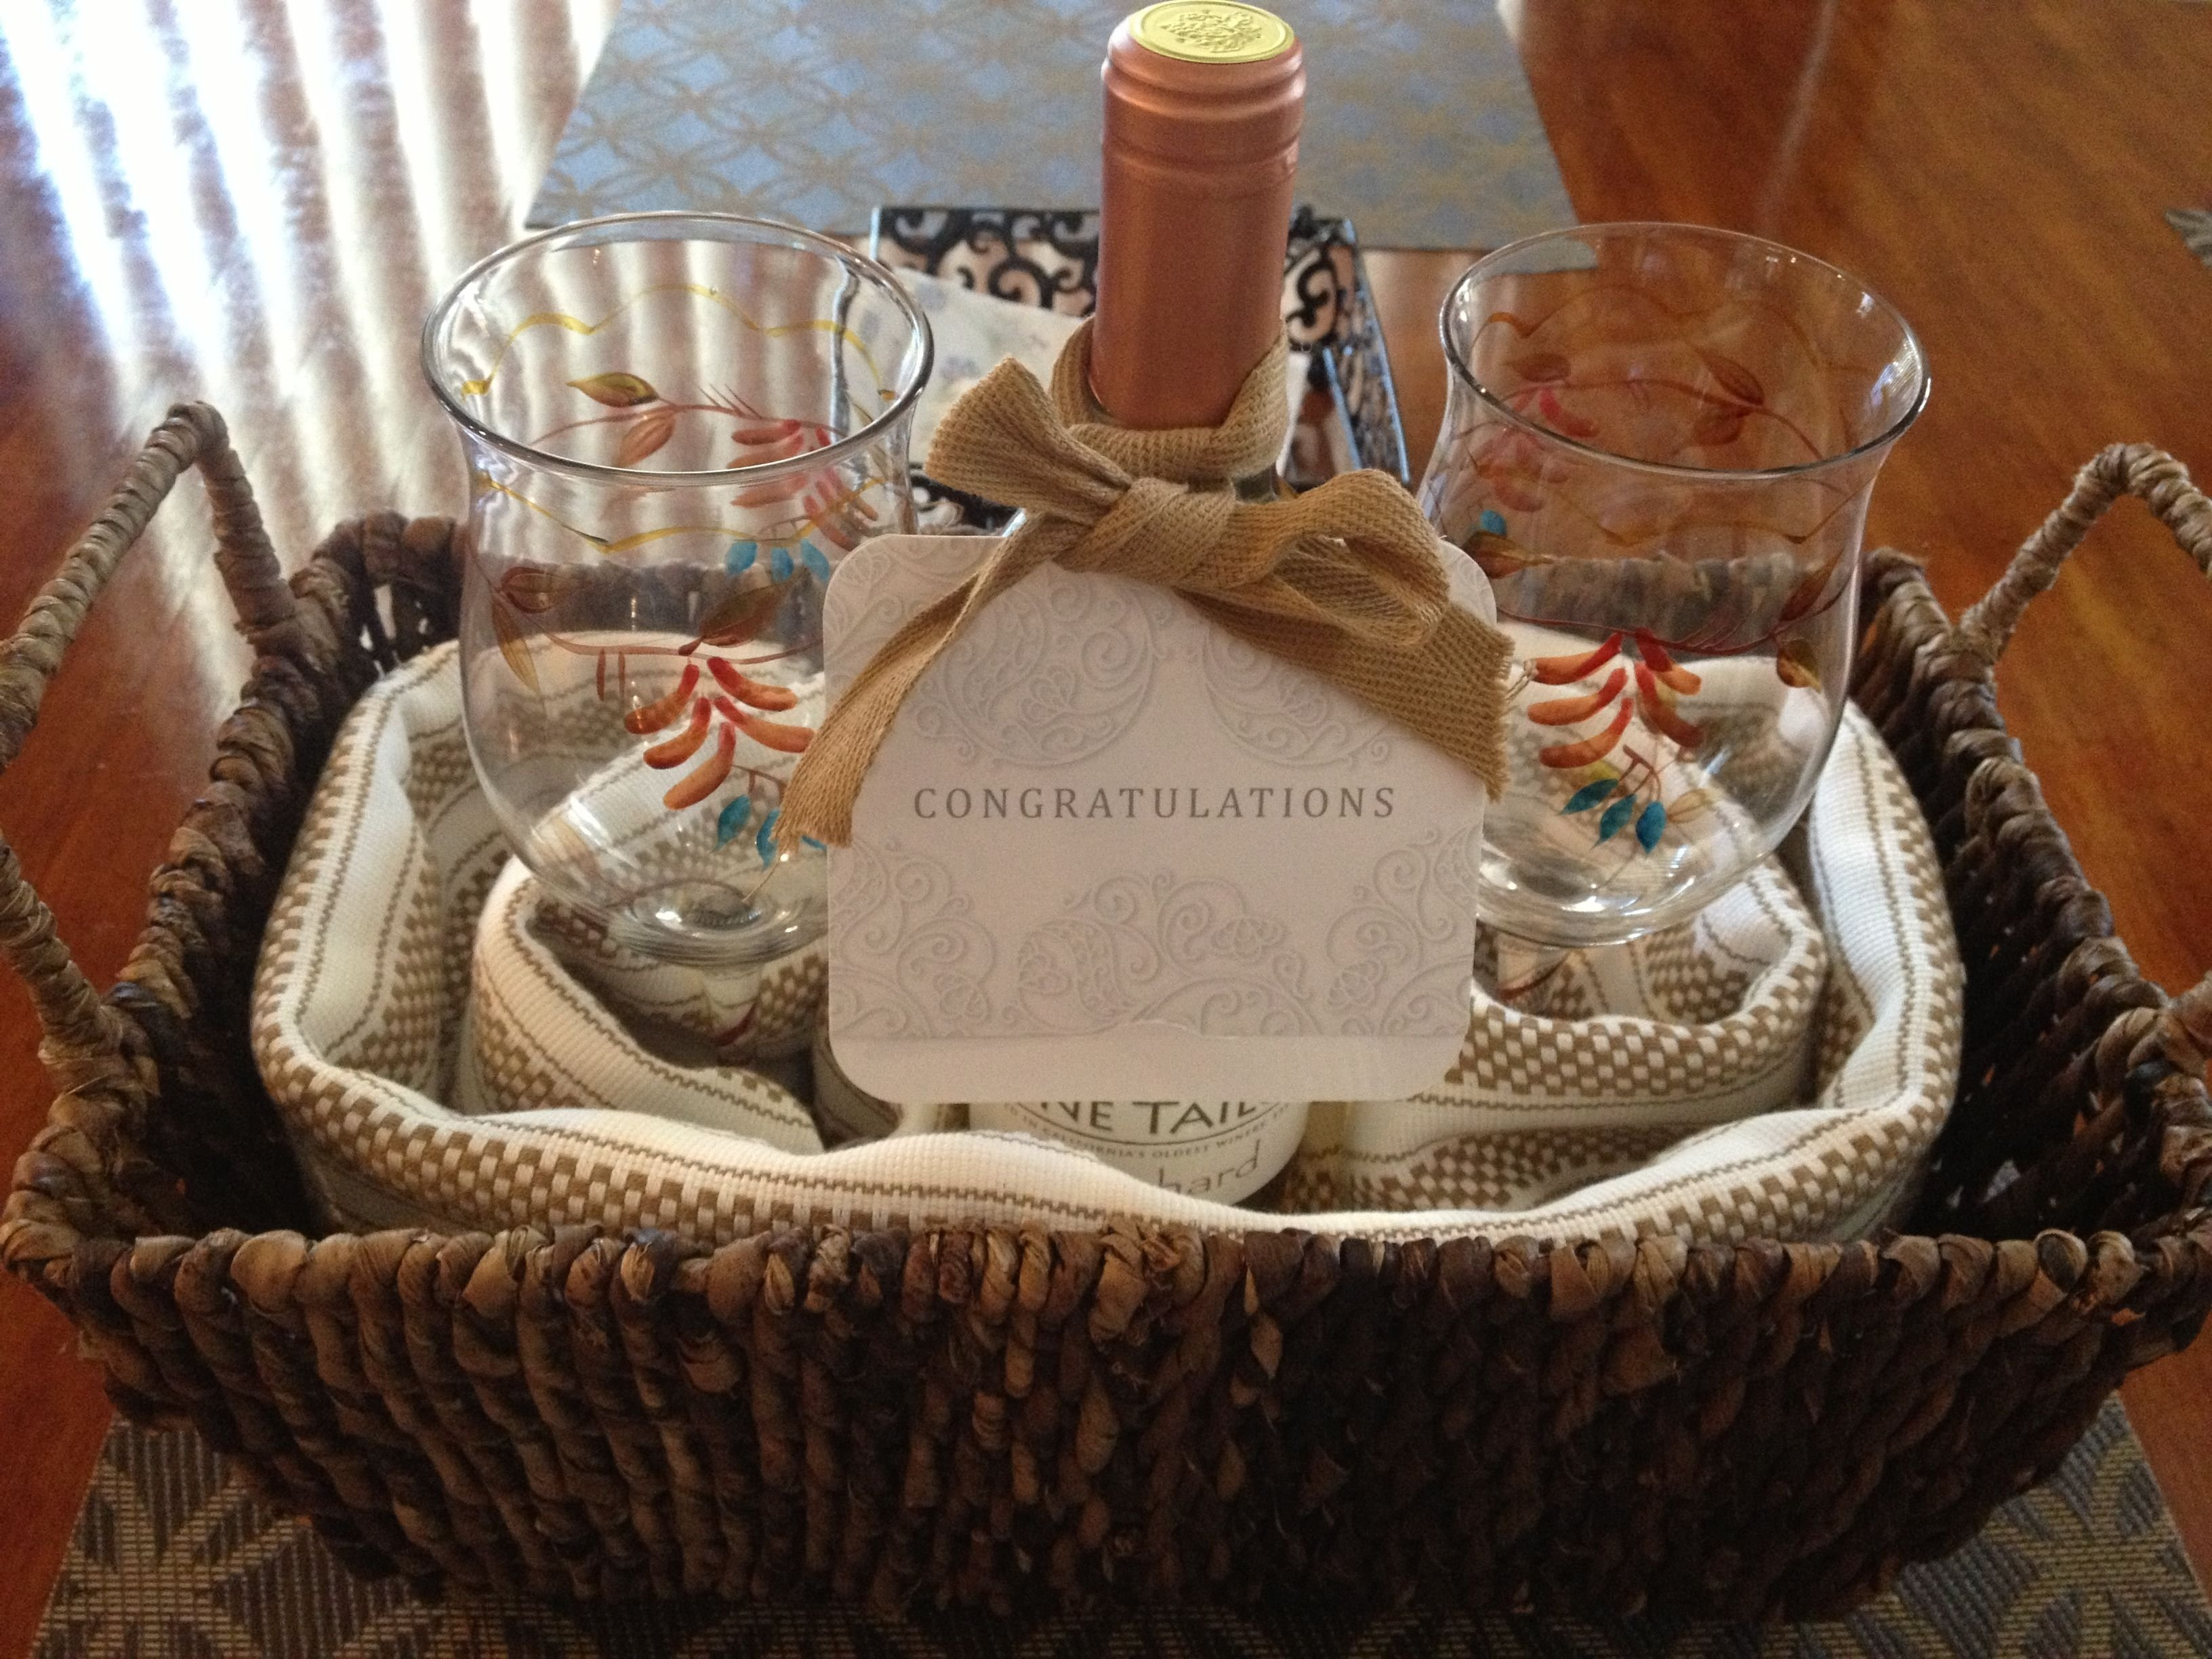 10 Beautiful Housewarming Gifts Ideas For Couples diy house warming gift wicker basket kitchen towels 2 wine 2020